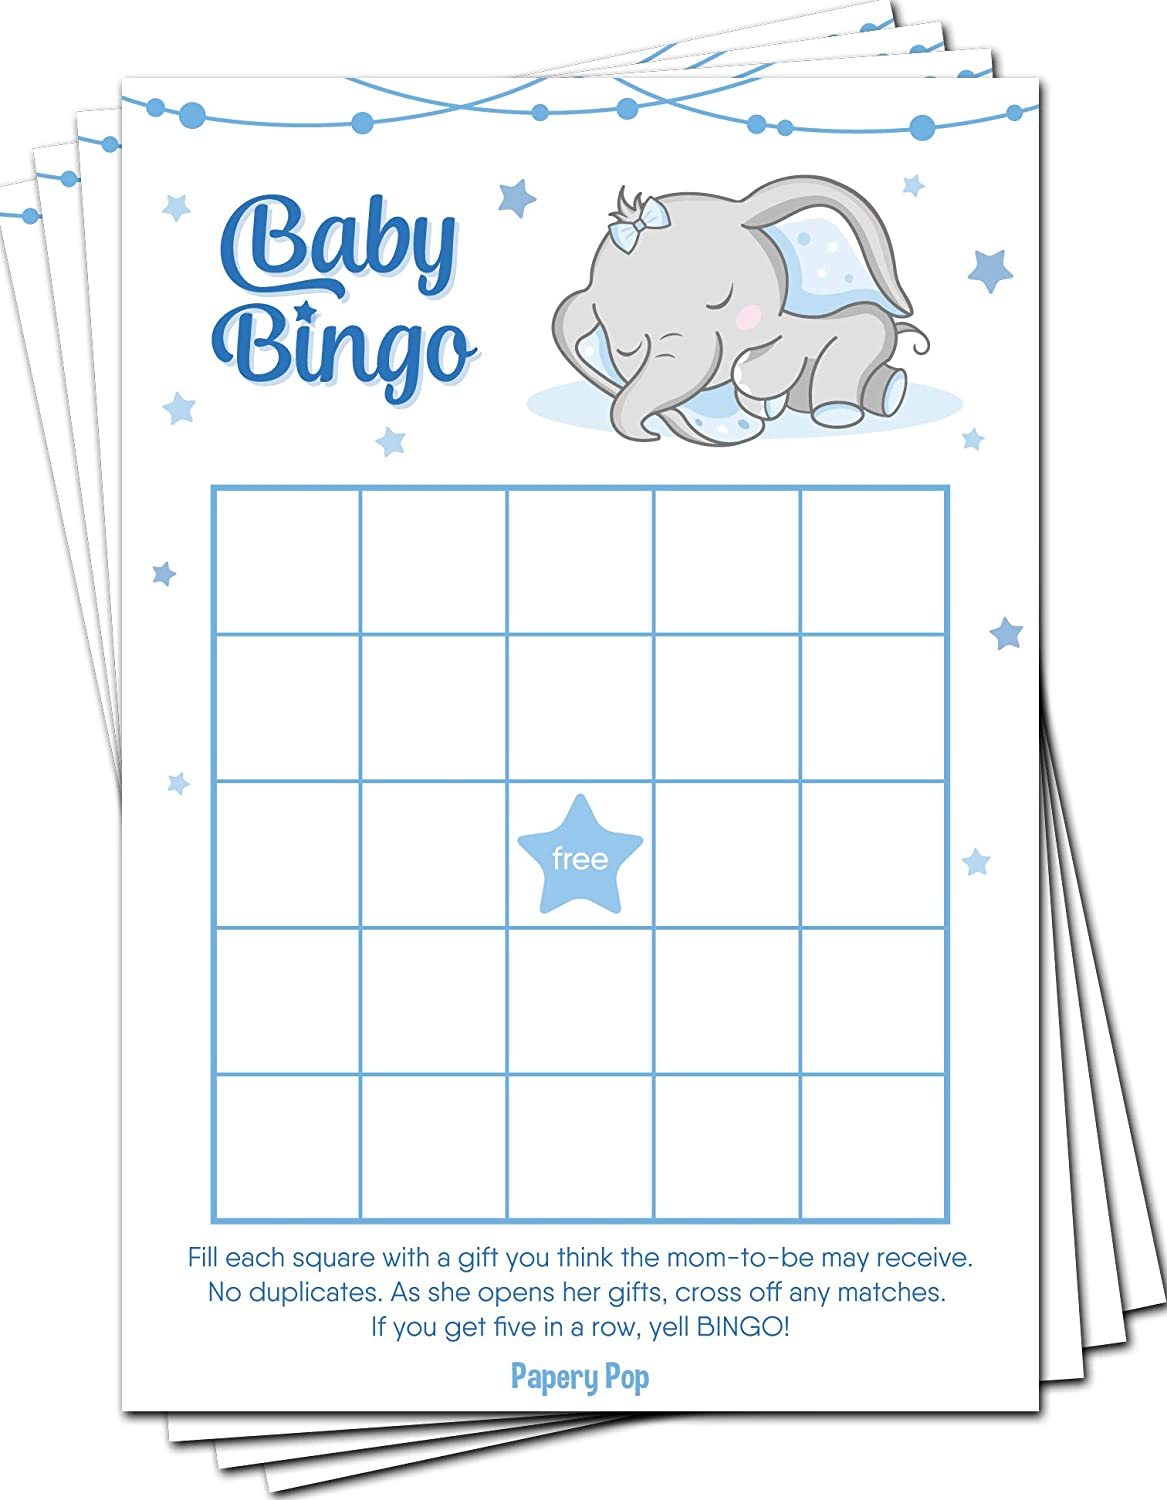 Baby Shower Bingo Game Cards (Pack of 50) - Baby Shower Games for Boys - Party Activities Ideas Supplies - Elephant